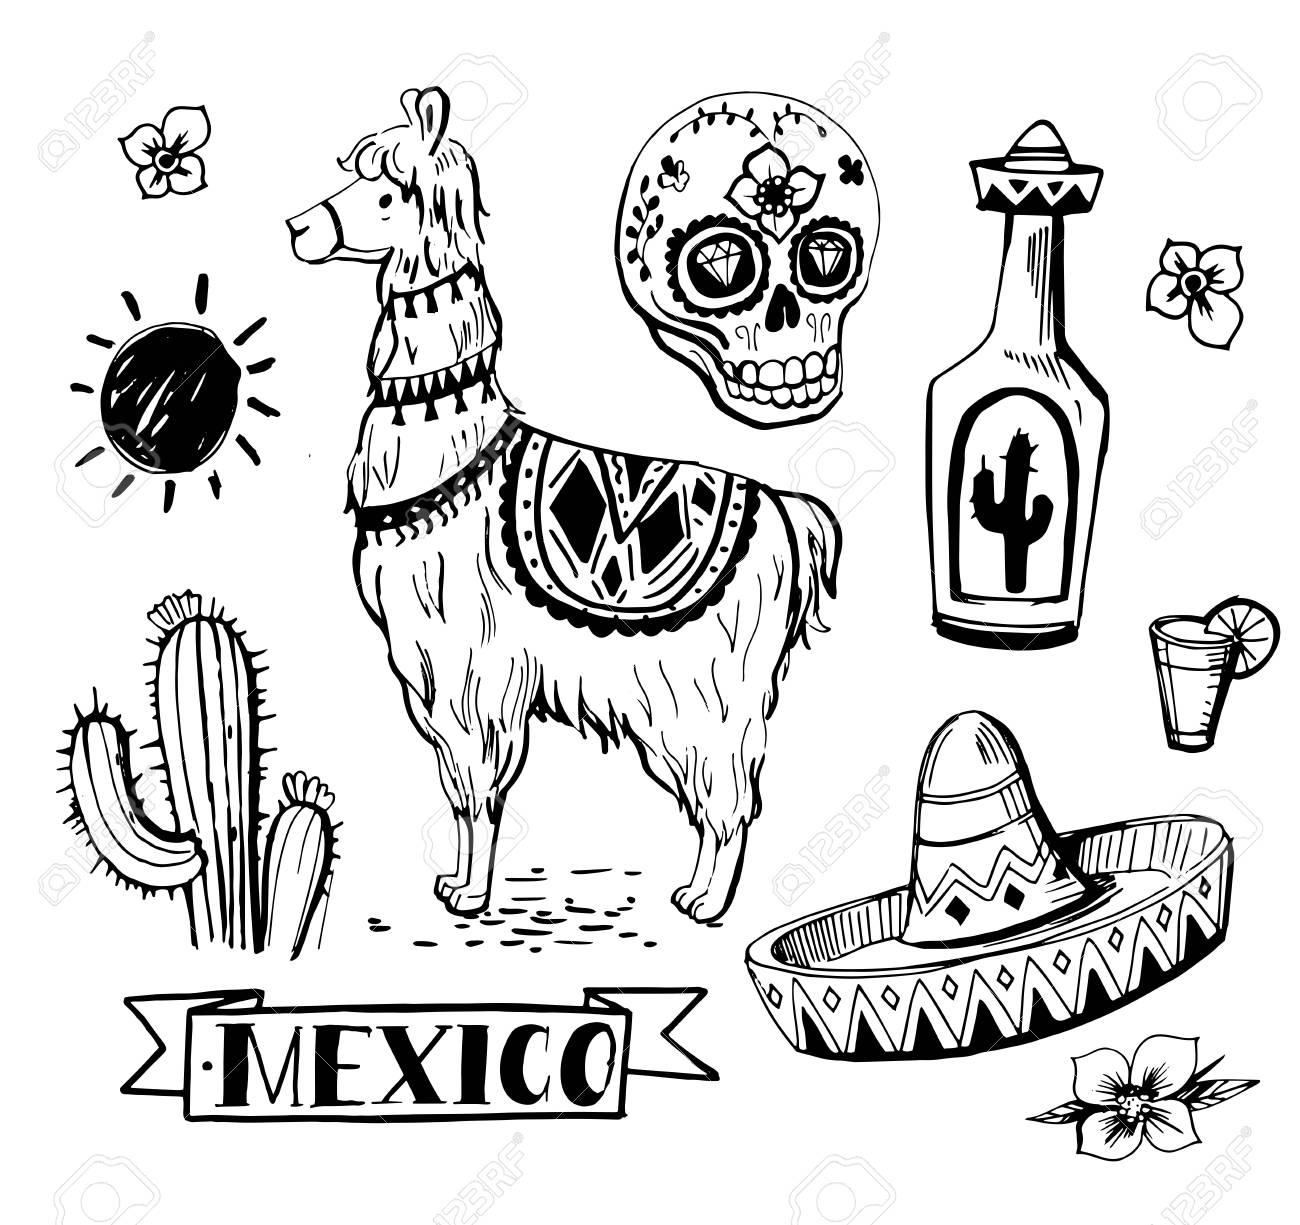 1300x1225 Set Of Mexican Objects Sun, Cactus, Llama, Sombrero, Tequila